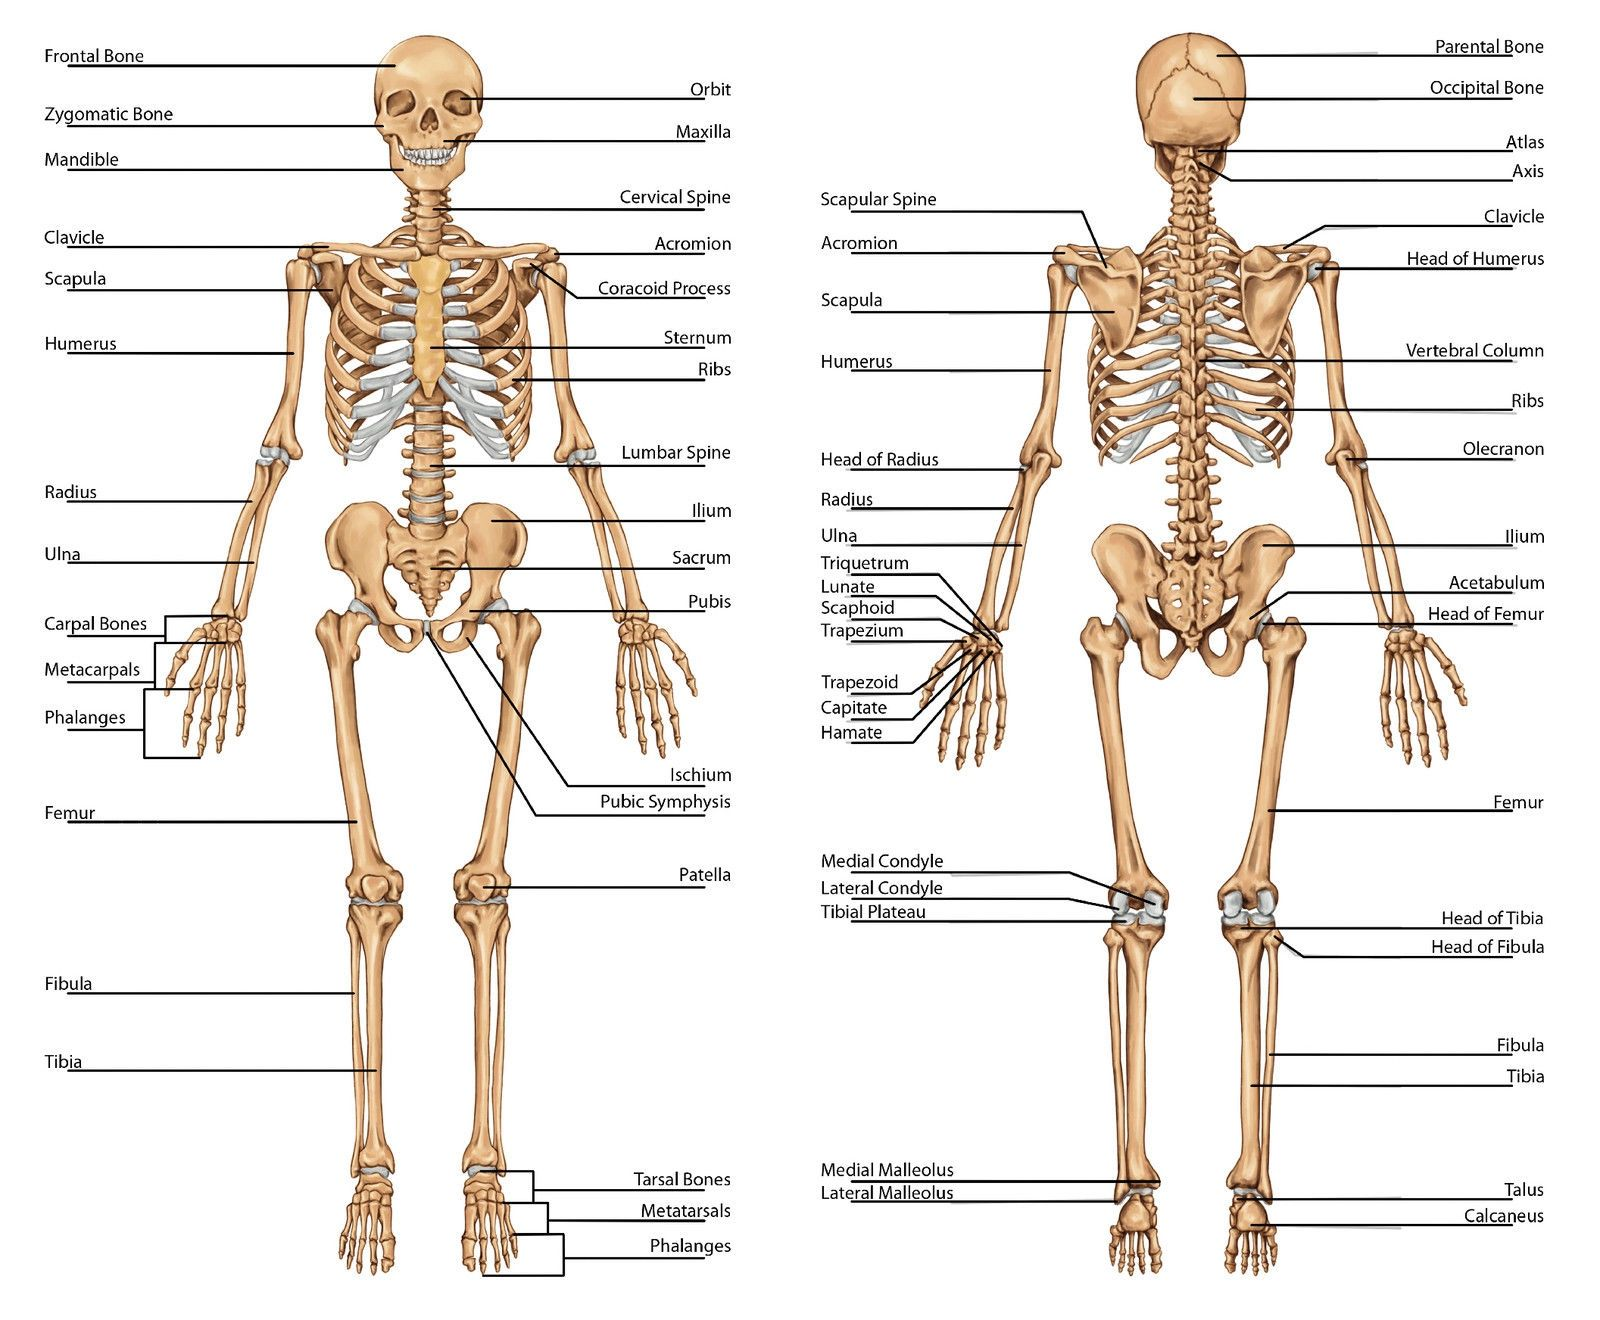 anatomy of the bones in your body skeleton bones human skeleton, Skeleton